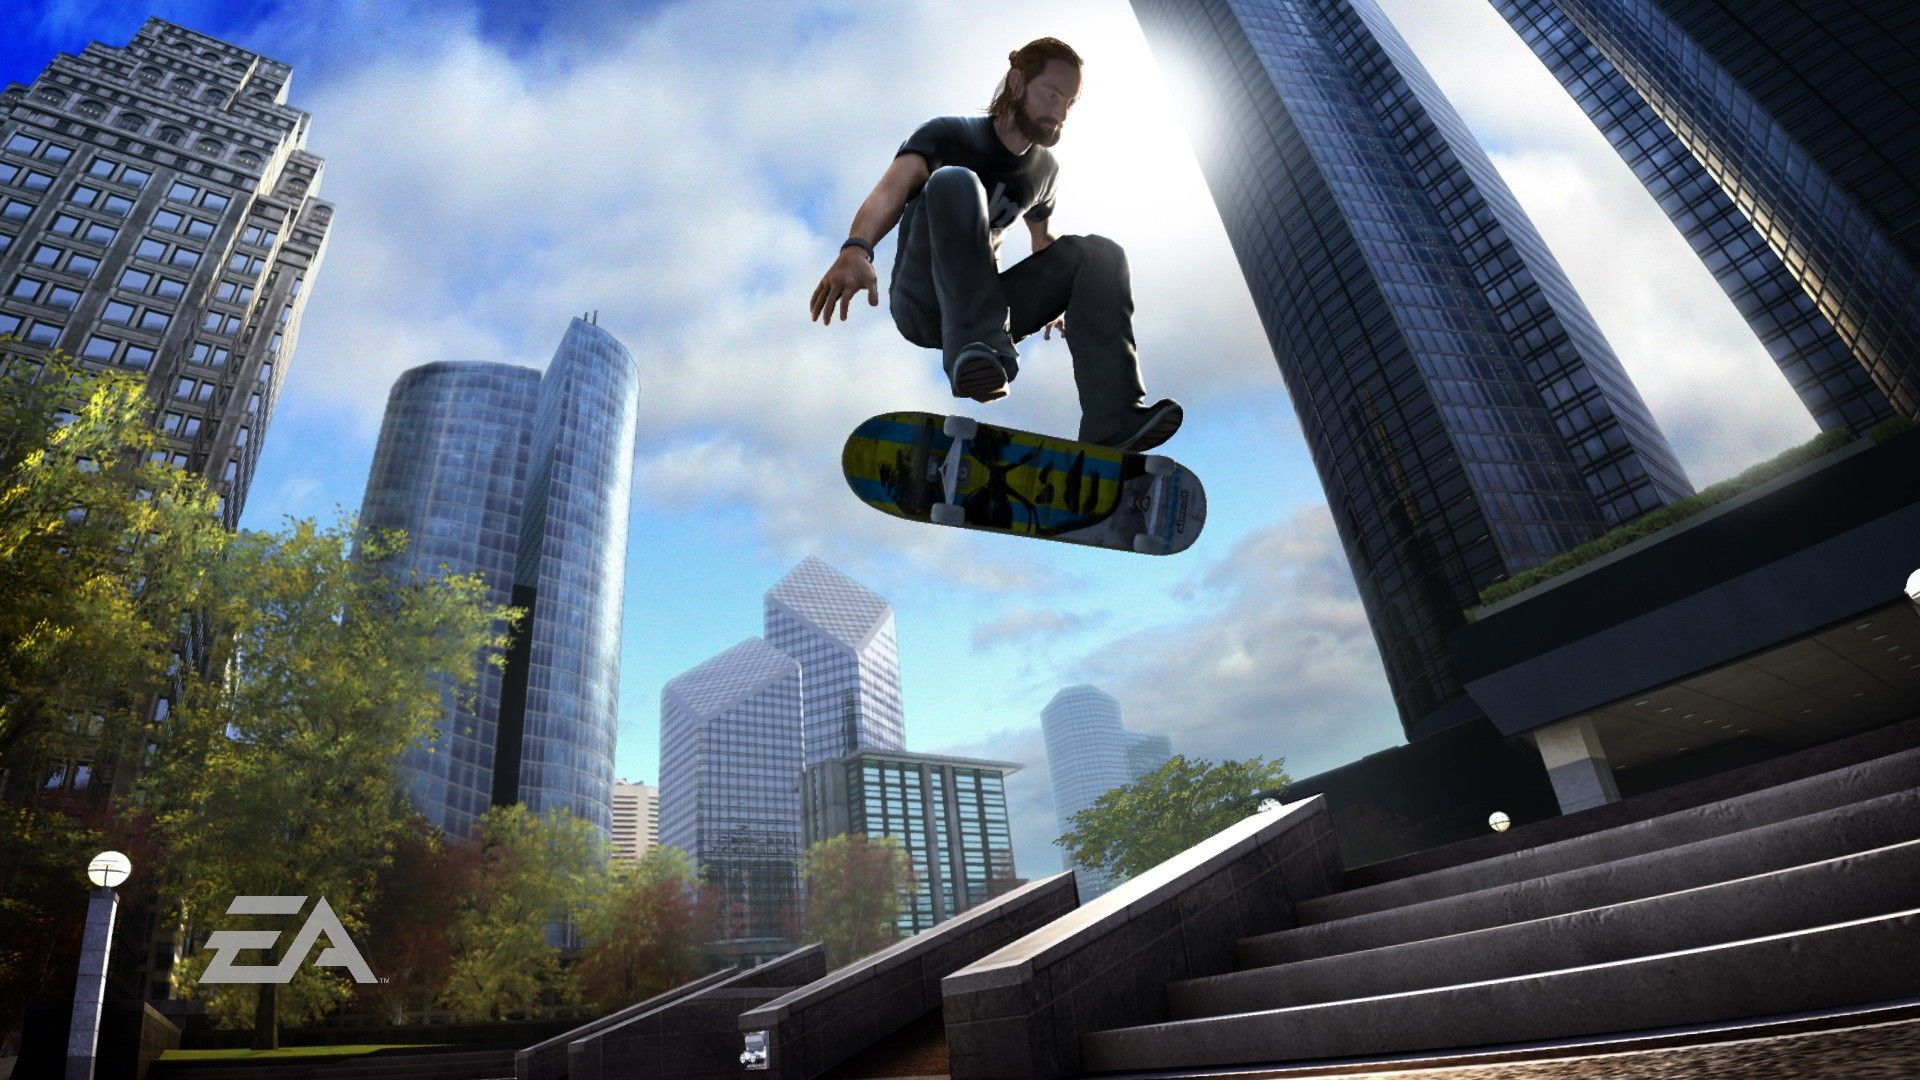 tony hawk wallpaper hd wallpapers pinterest tony hawk and